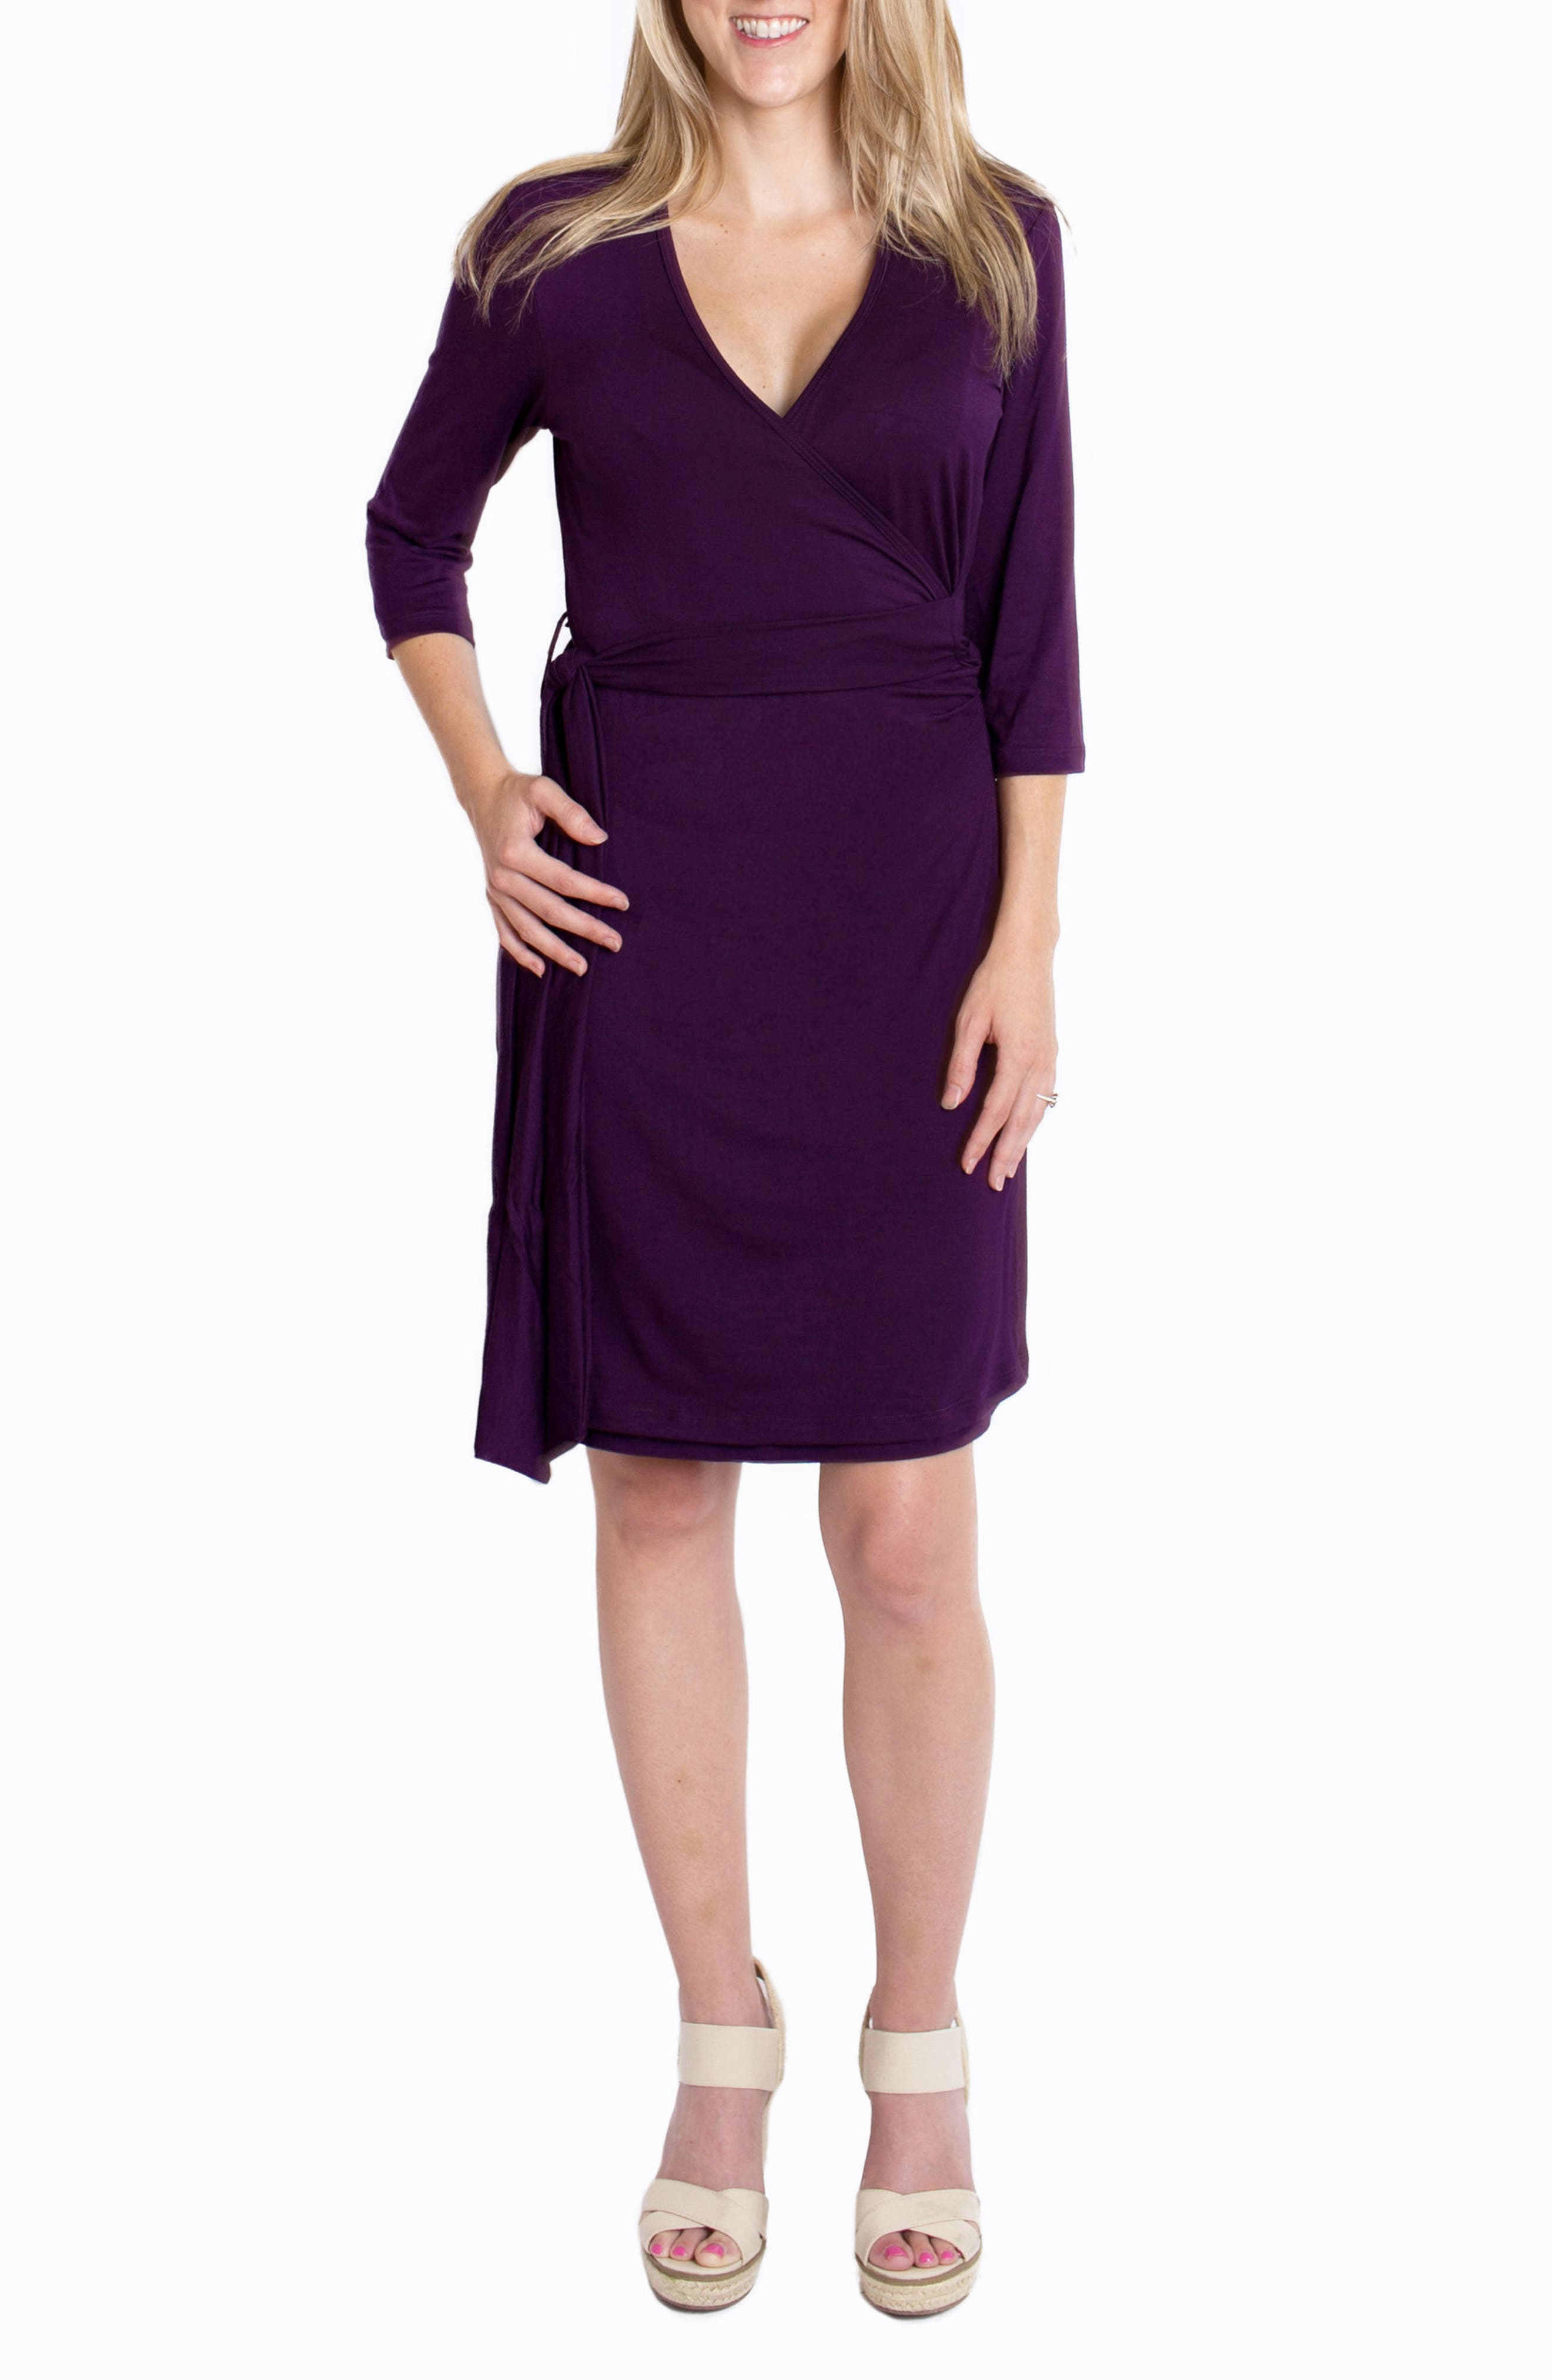 'Whimsical' Nursing Wrap Dress,                             Main thumbnail 1, color,                             Plum